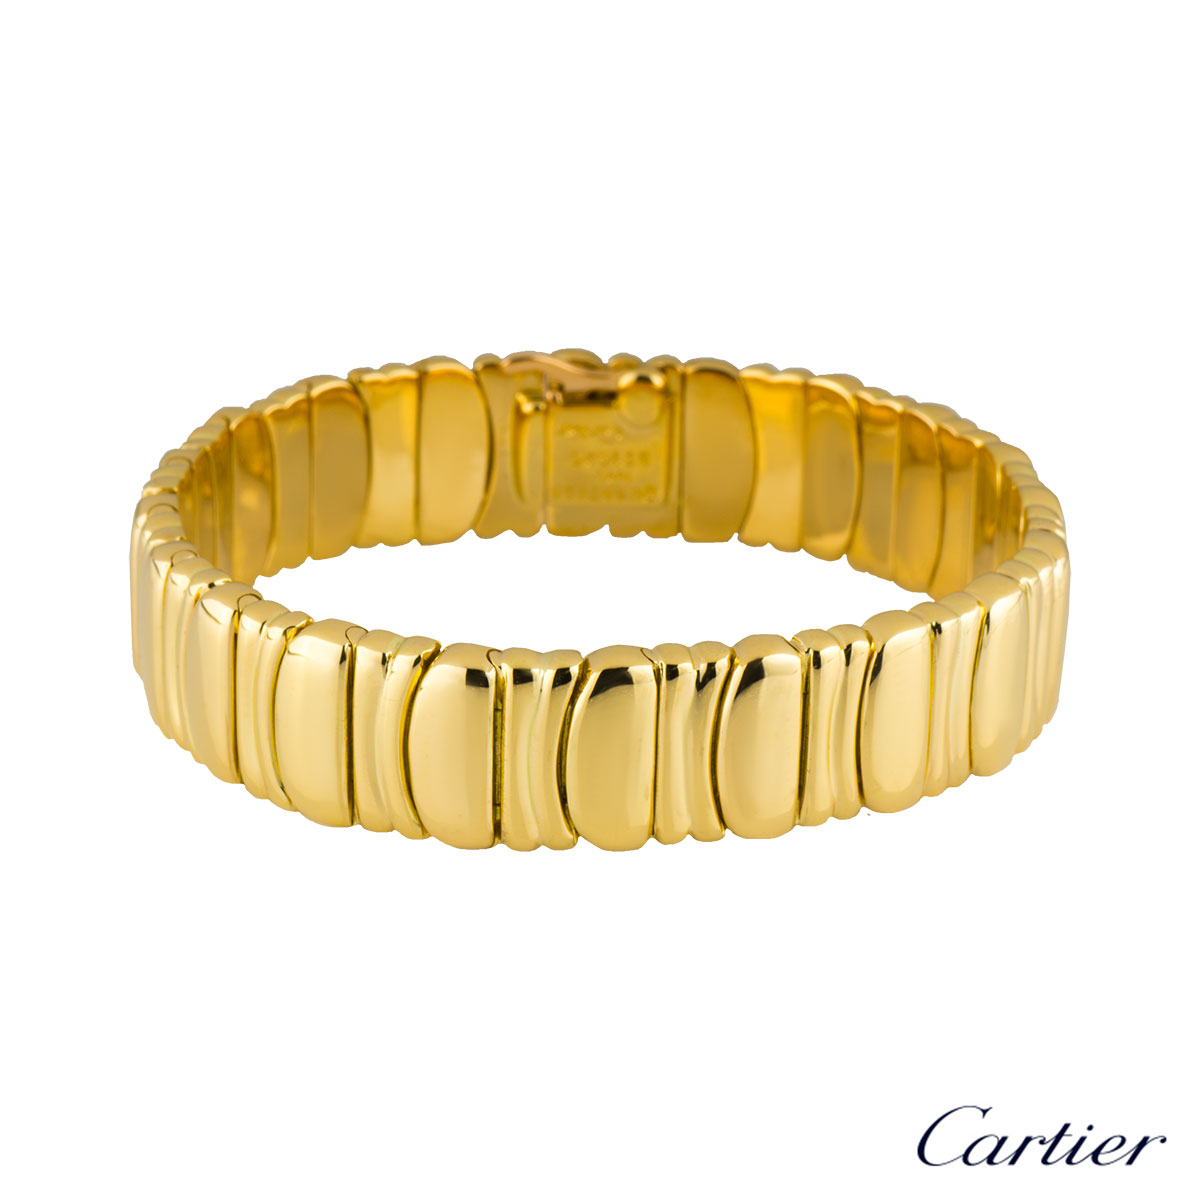 Cartier Yellow Gold Baignoire Bracelet